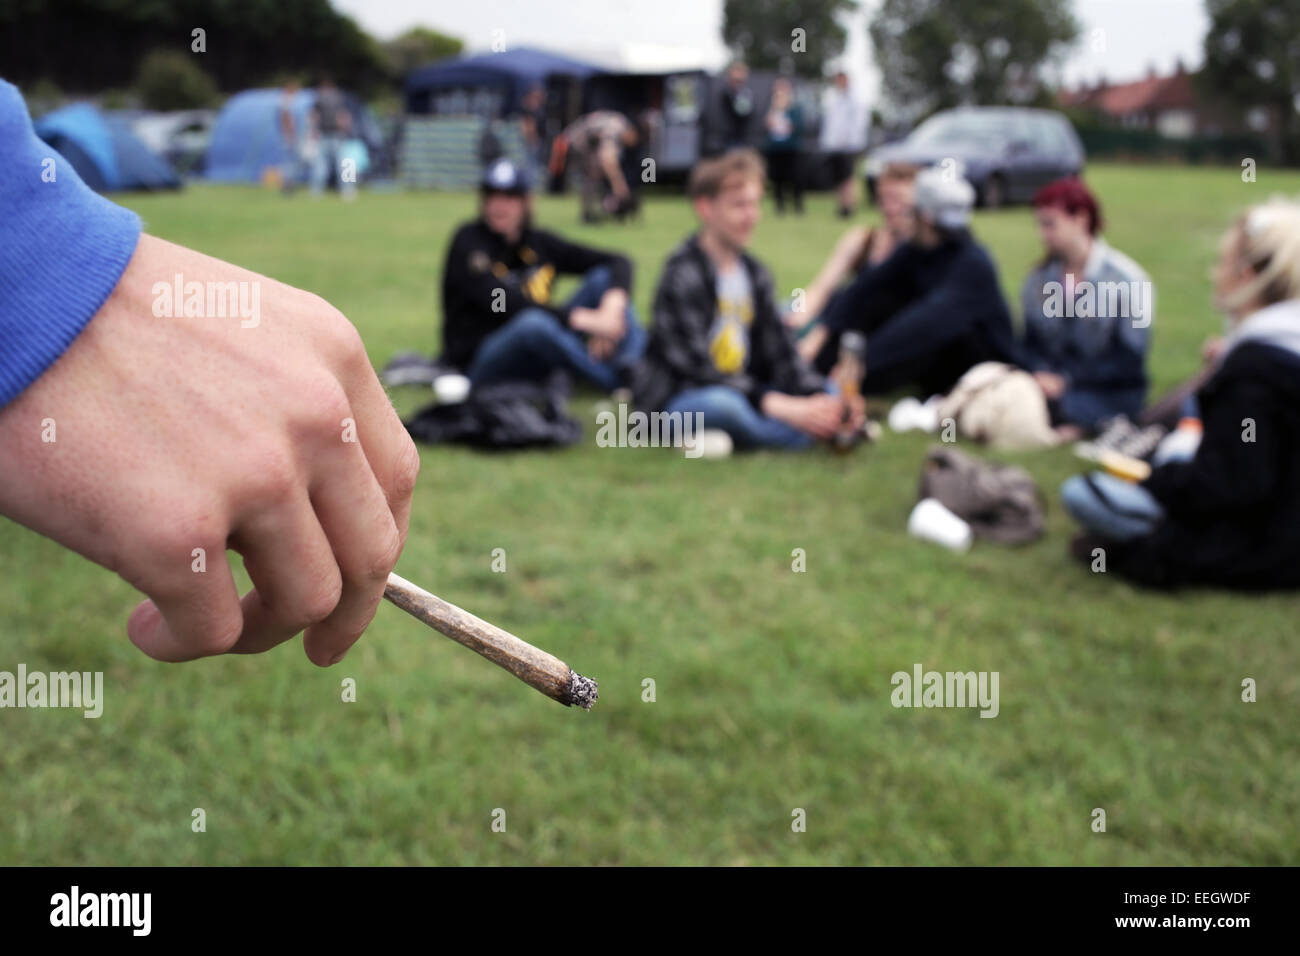 A skunk cannabis joint at a cannabis festival in Redcar, Teesside, UK. Stock Photo